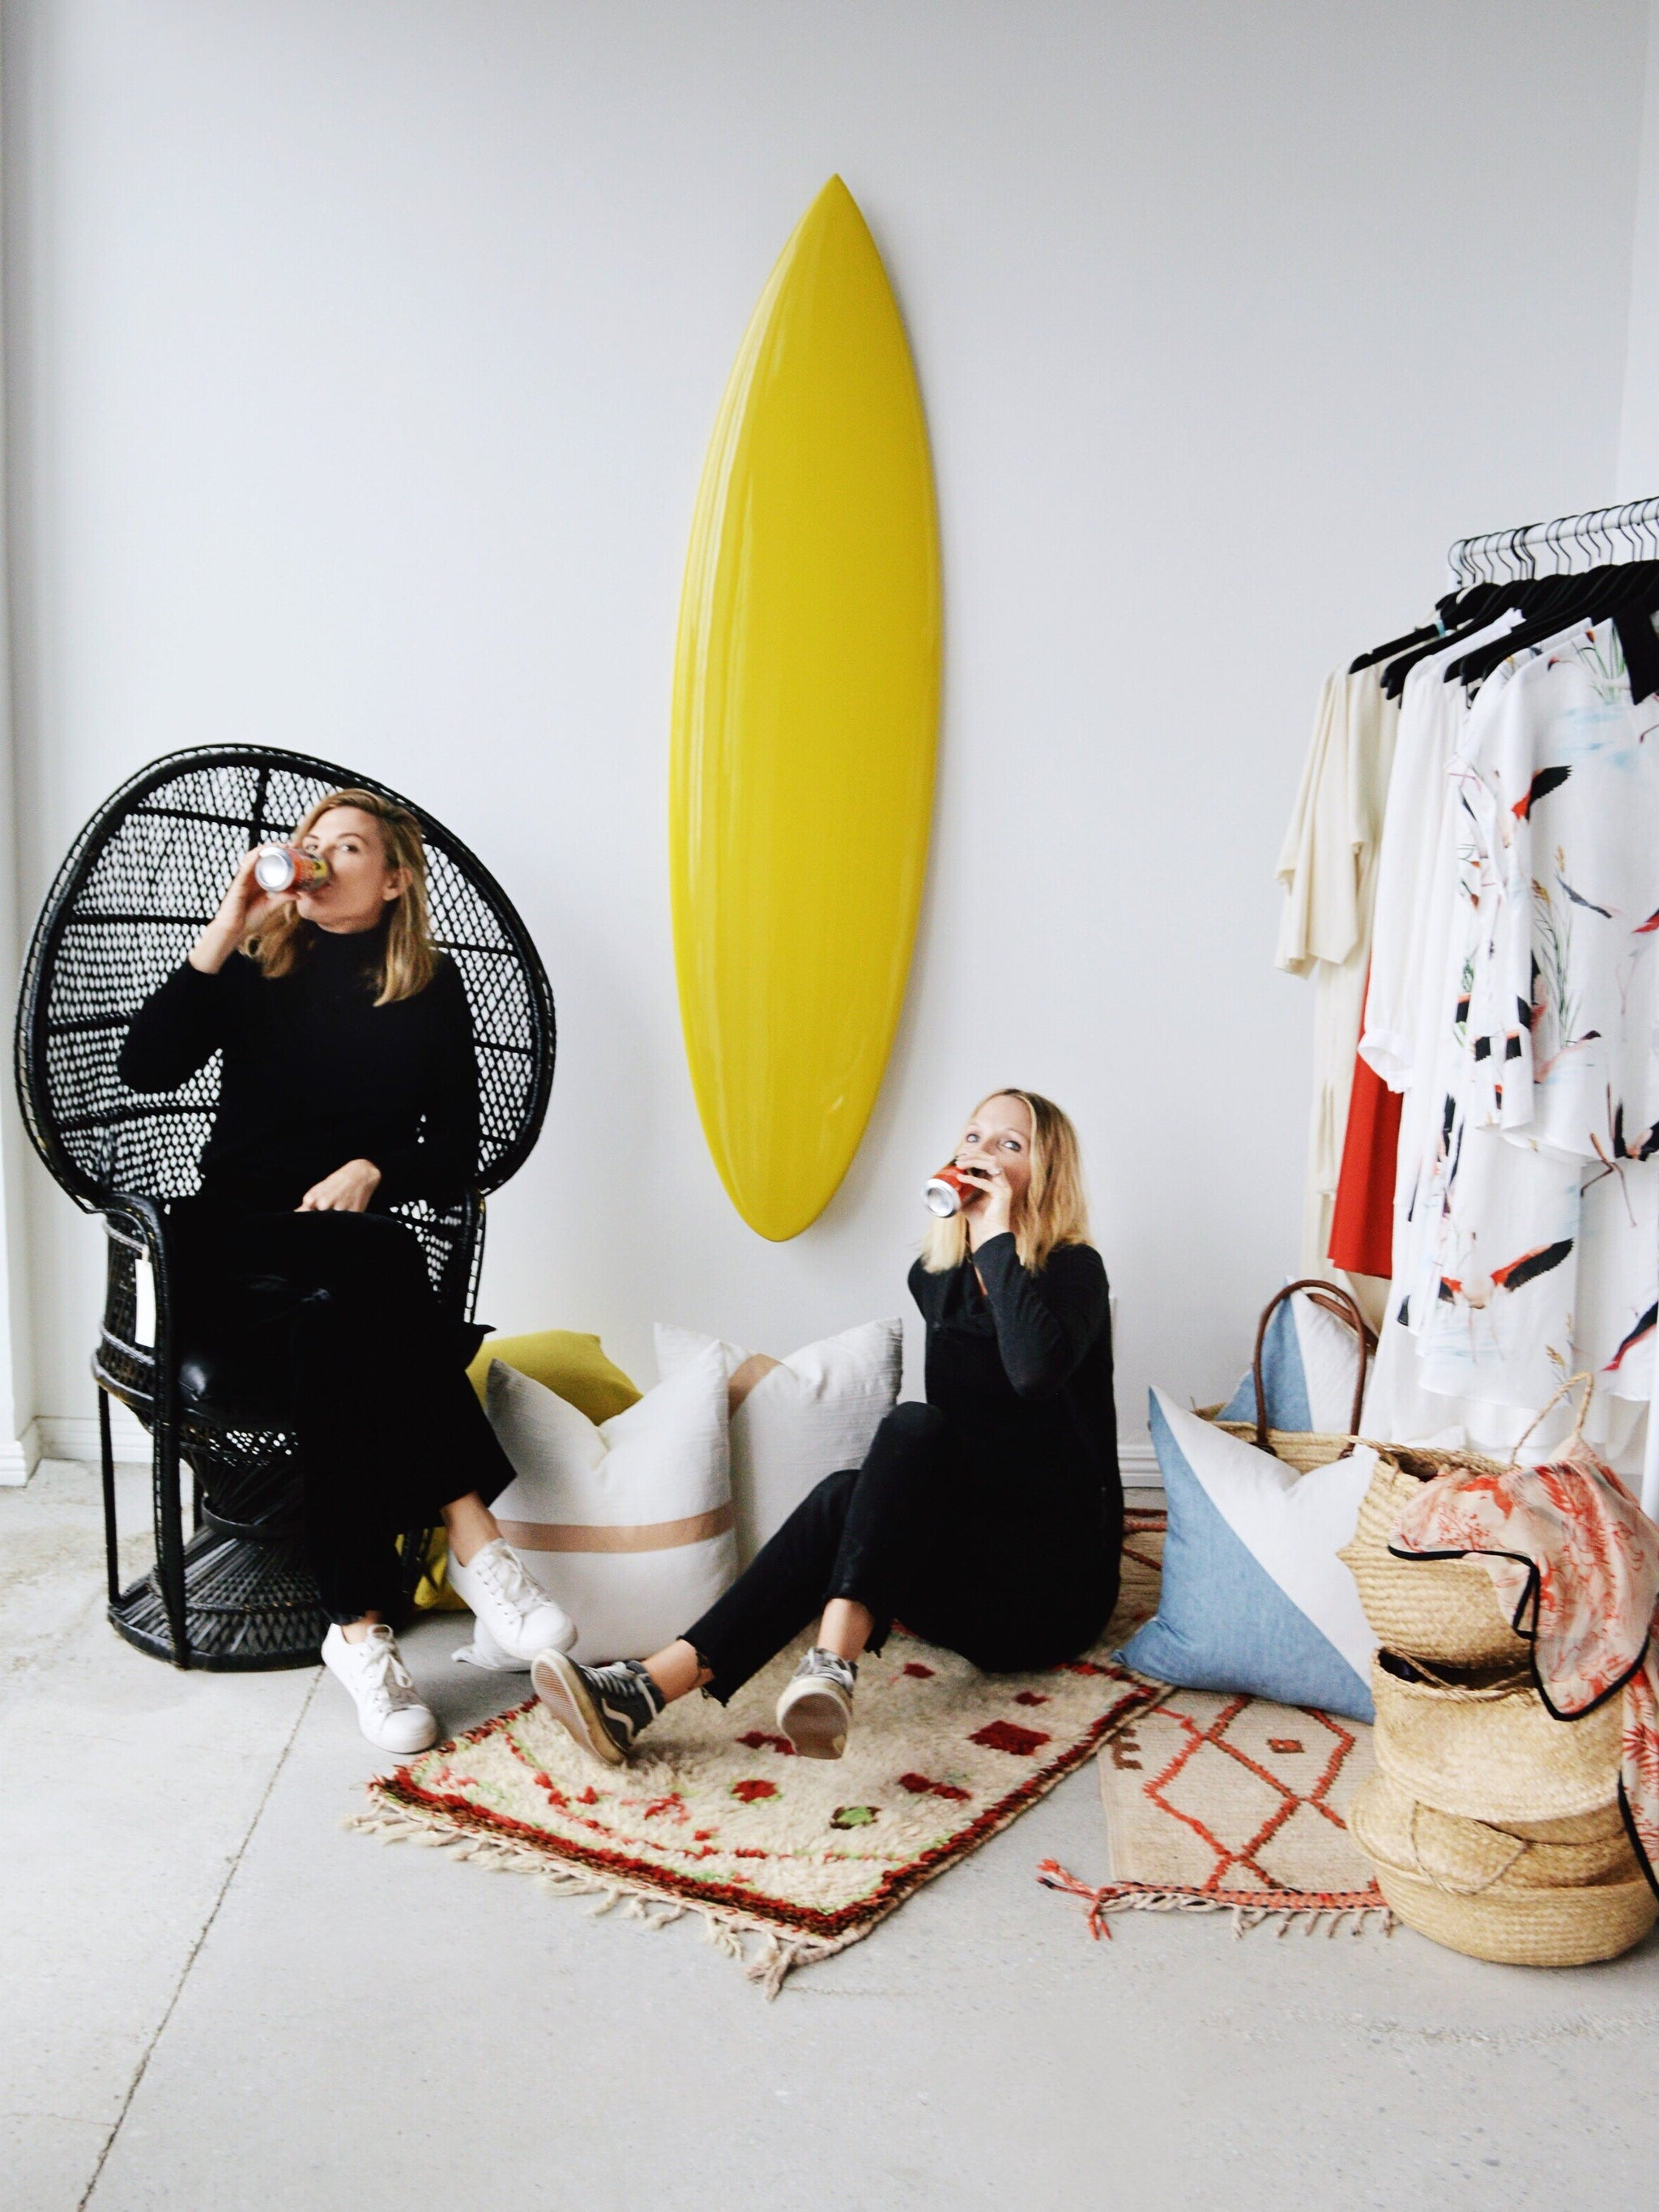 Join fashion designer Heidi Merrick and interior designer Kristin Dion this Saturday